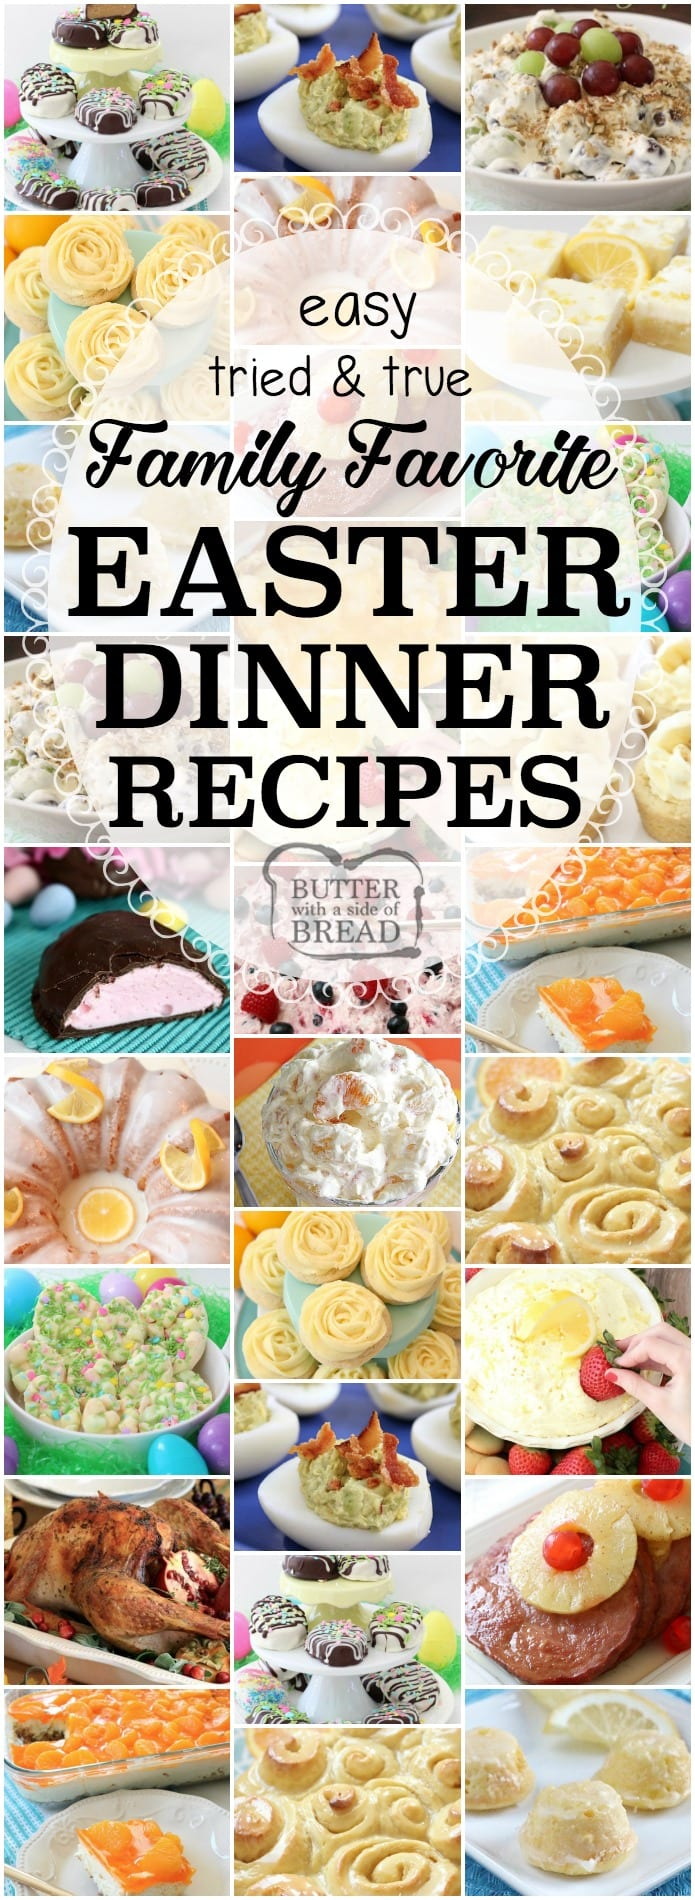 Easter Dinner Recipes: tried and true easy Easter dinner recipes with everything from slow cooker ham to Orange Cream Fruit Salad, Banana Cream Pie Cookies, Pecan Grape Salad and more. All the Easter dinner recipes you need for a delicious, festive holiday are here. #Easter #dinner #recipes from Butter With A Side of Bread #ham #turkey #food #holiday #easy